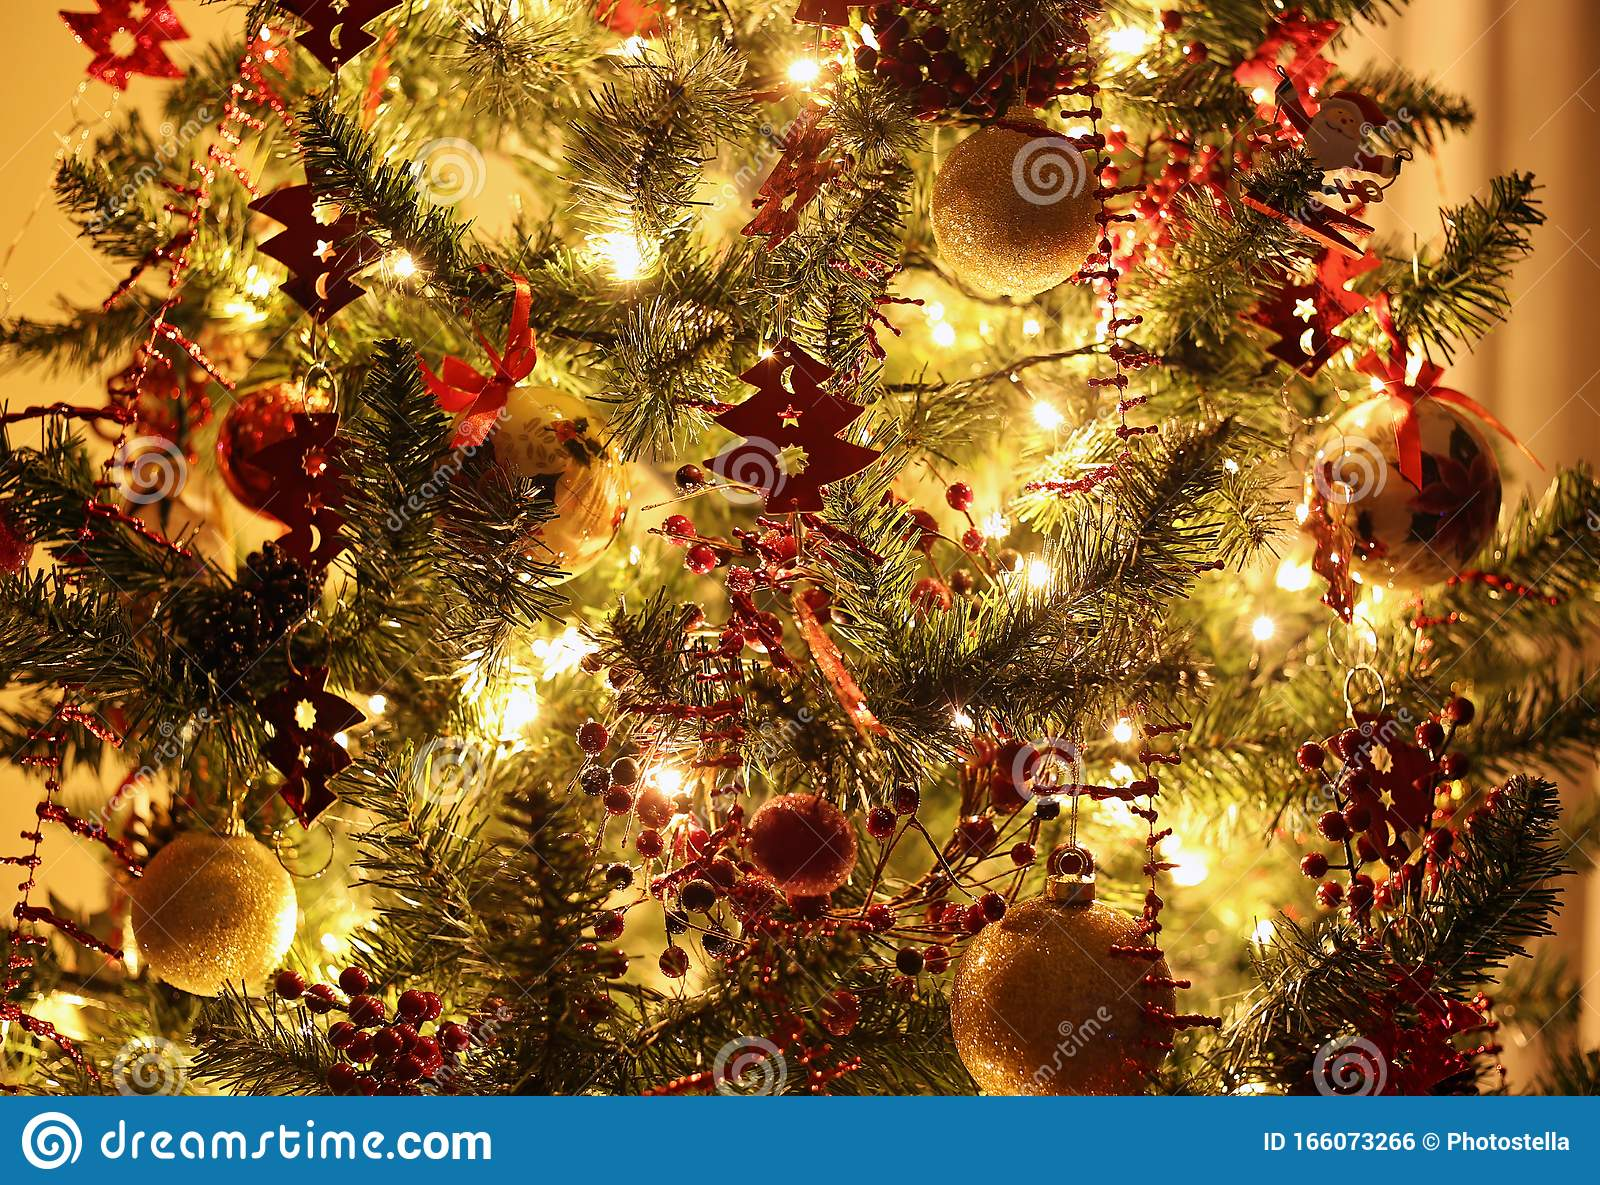 Night Christmas Tree With Ornaments In Red And Gold Colors Stock Photo Image Of Orange Blinking 166073266